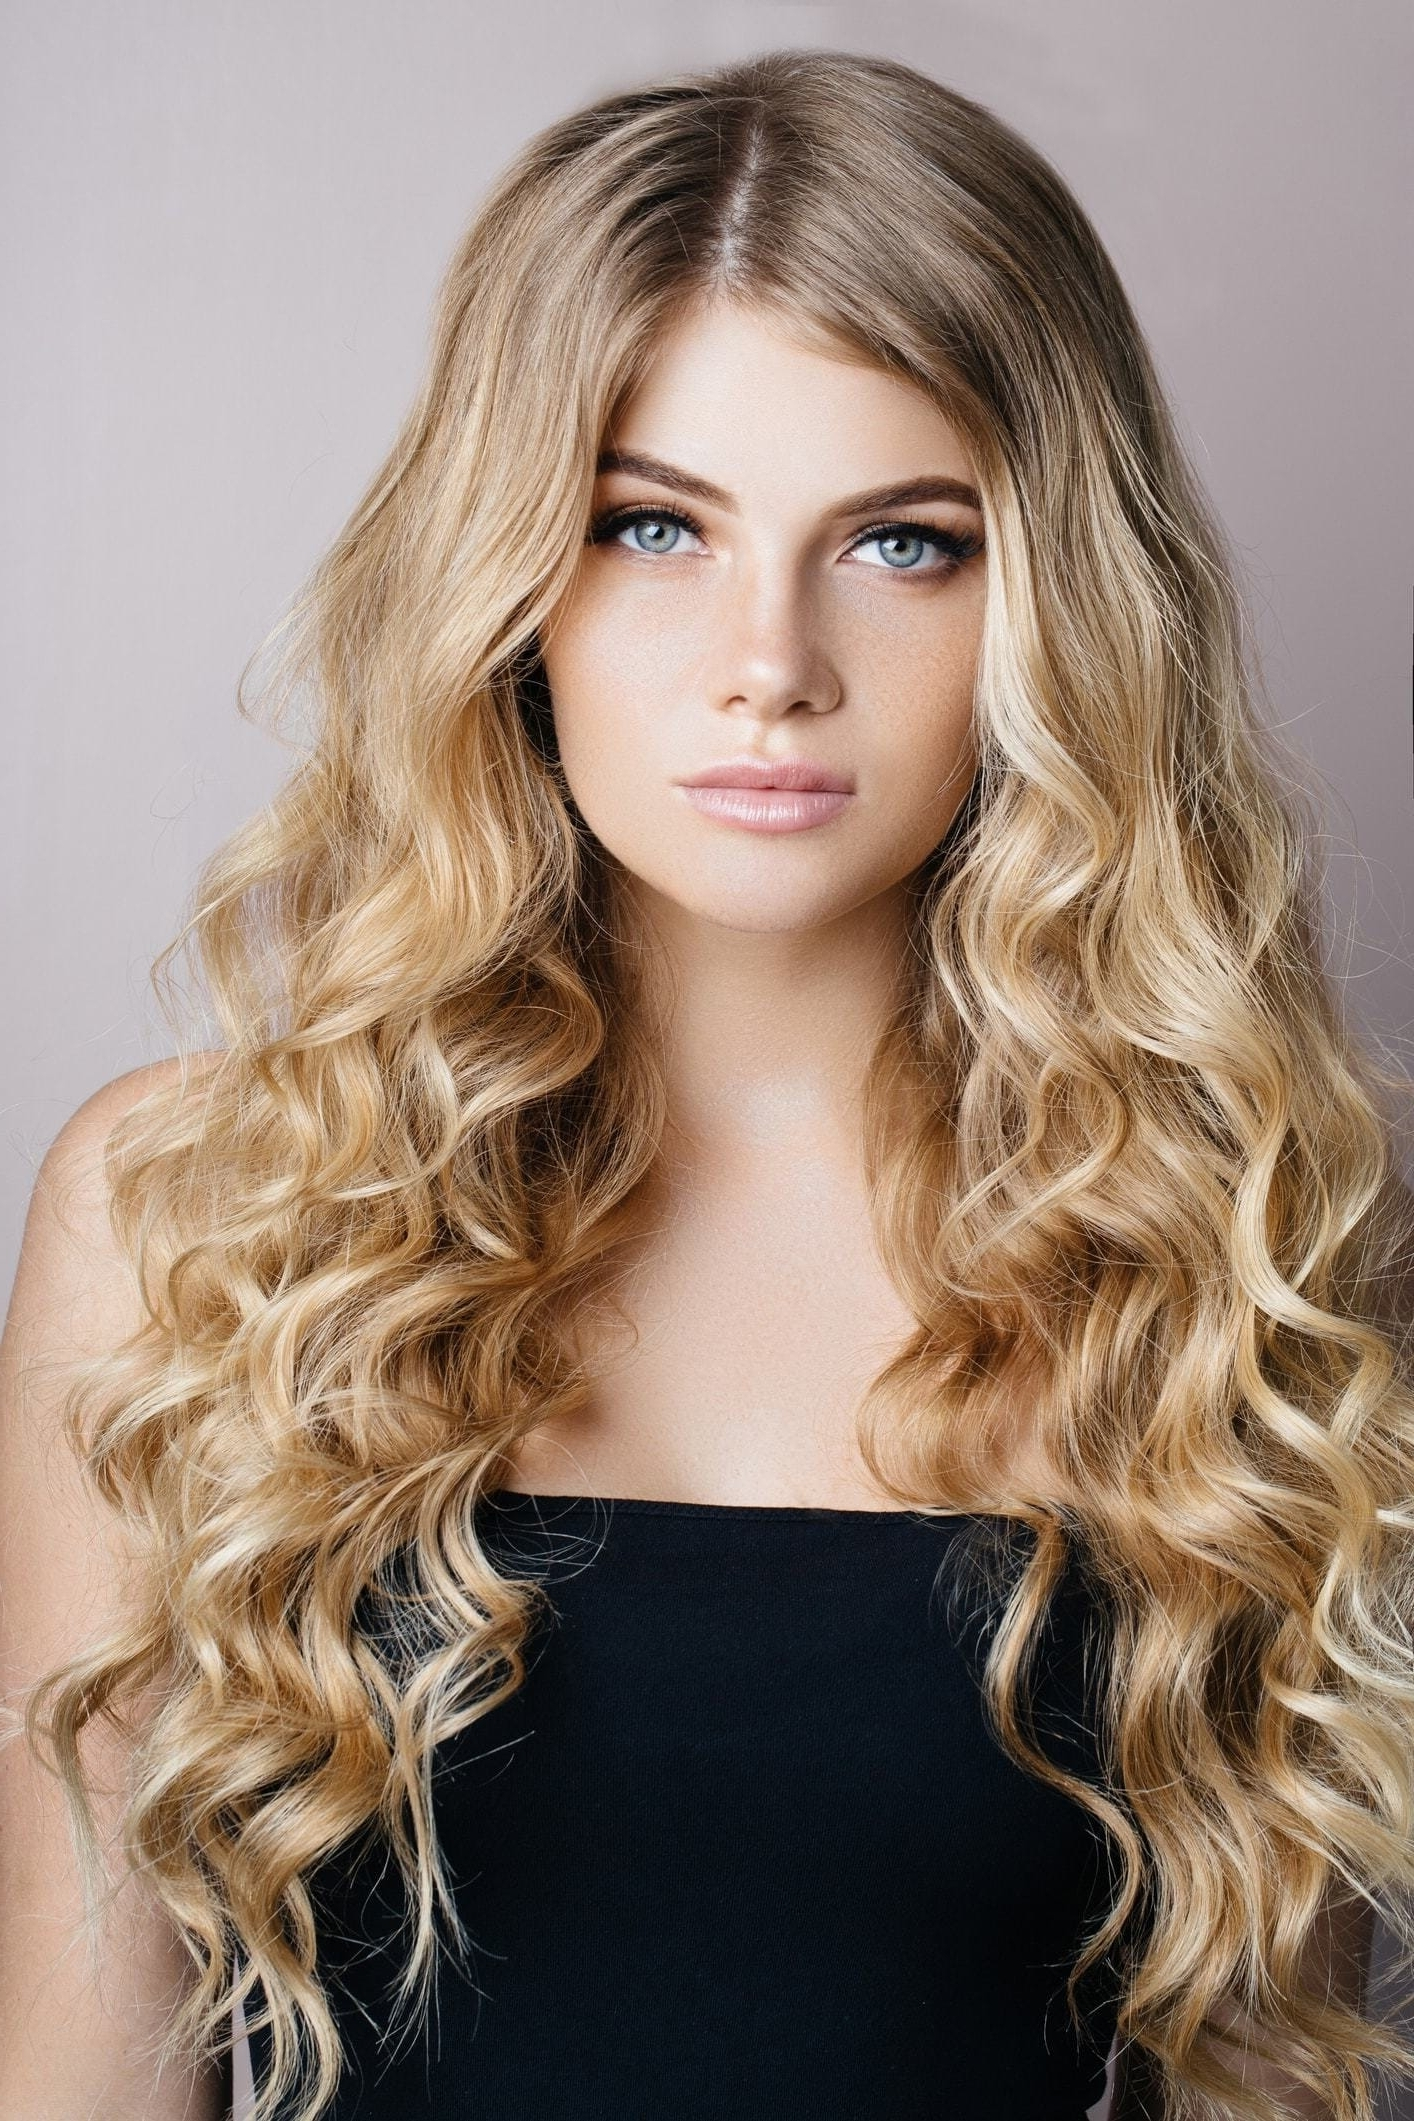 Blonde Curly Hair: 16 Bold And Beautiful Ways To Wear The Look For Most Popular Warm Blonde Curls Blonde Hairstyles (View 5 of 20)